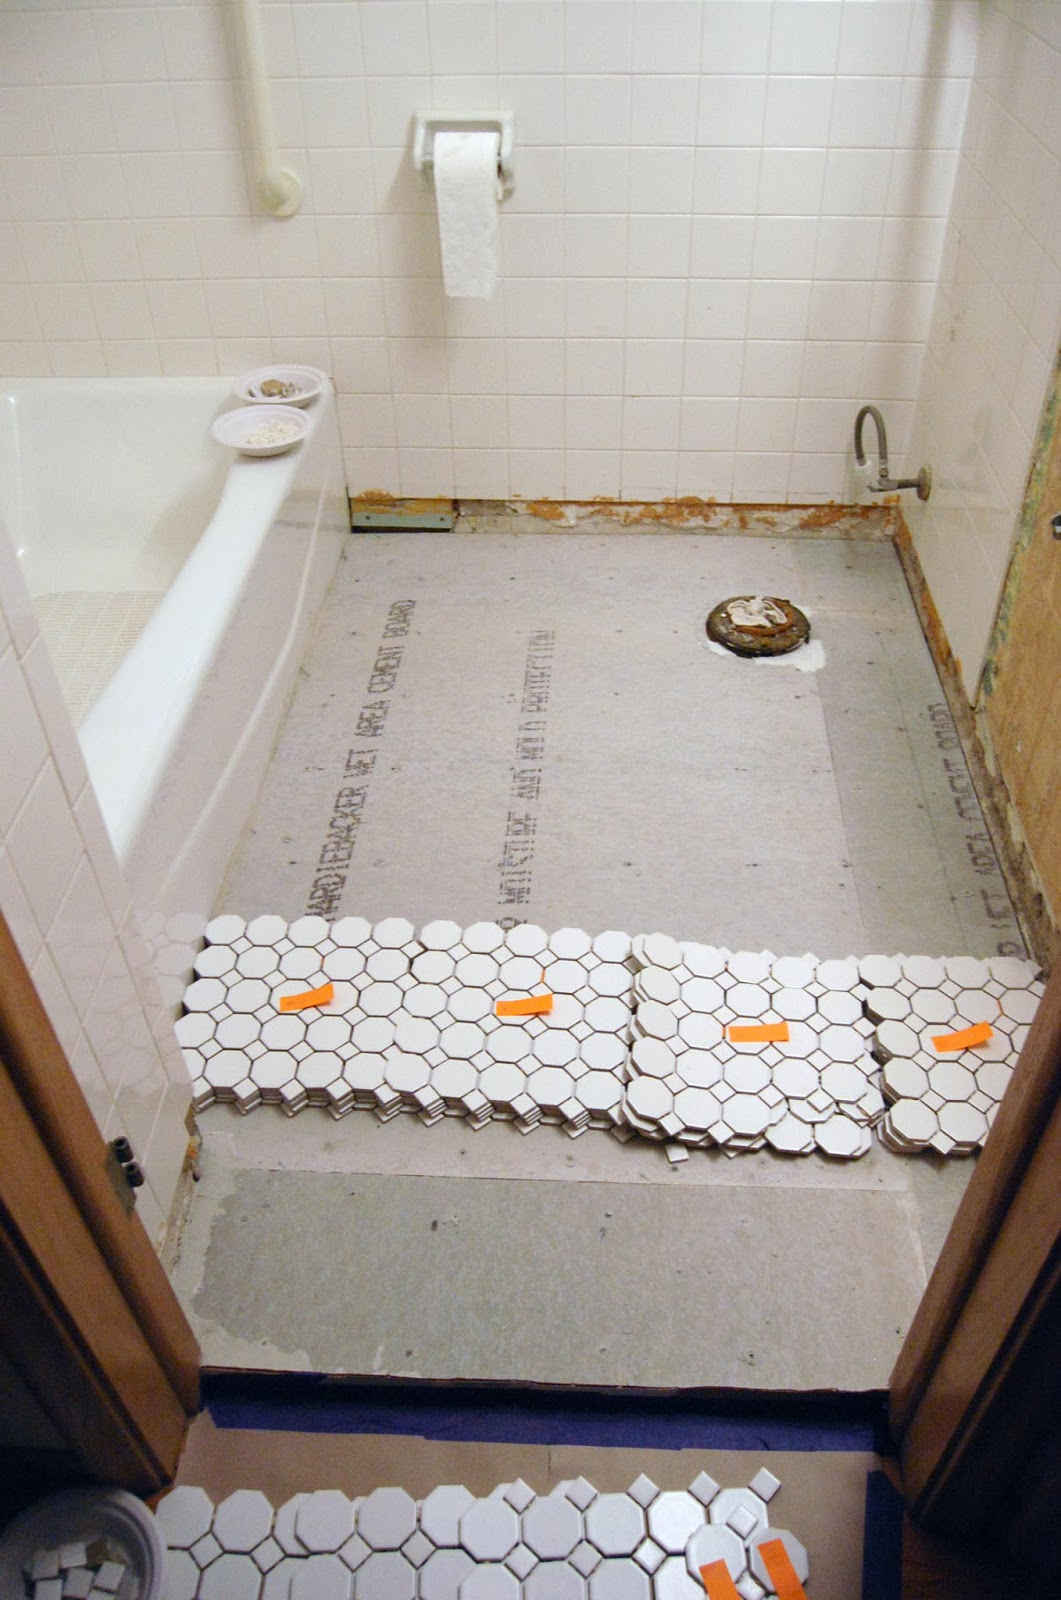 Bathroom Progress: laying some tile – JennBlogsHere